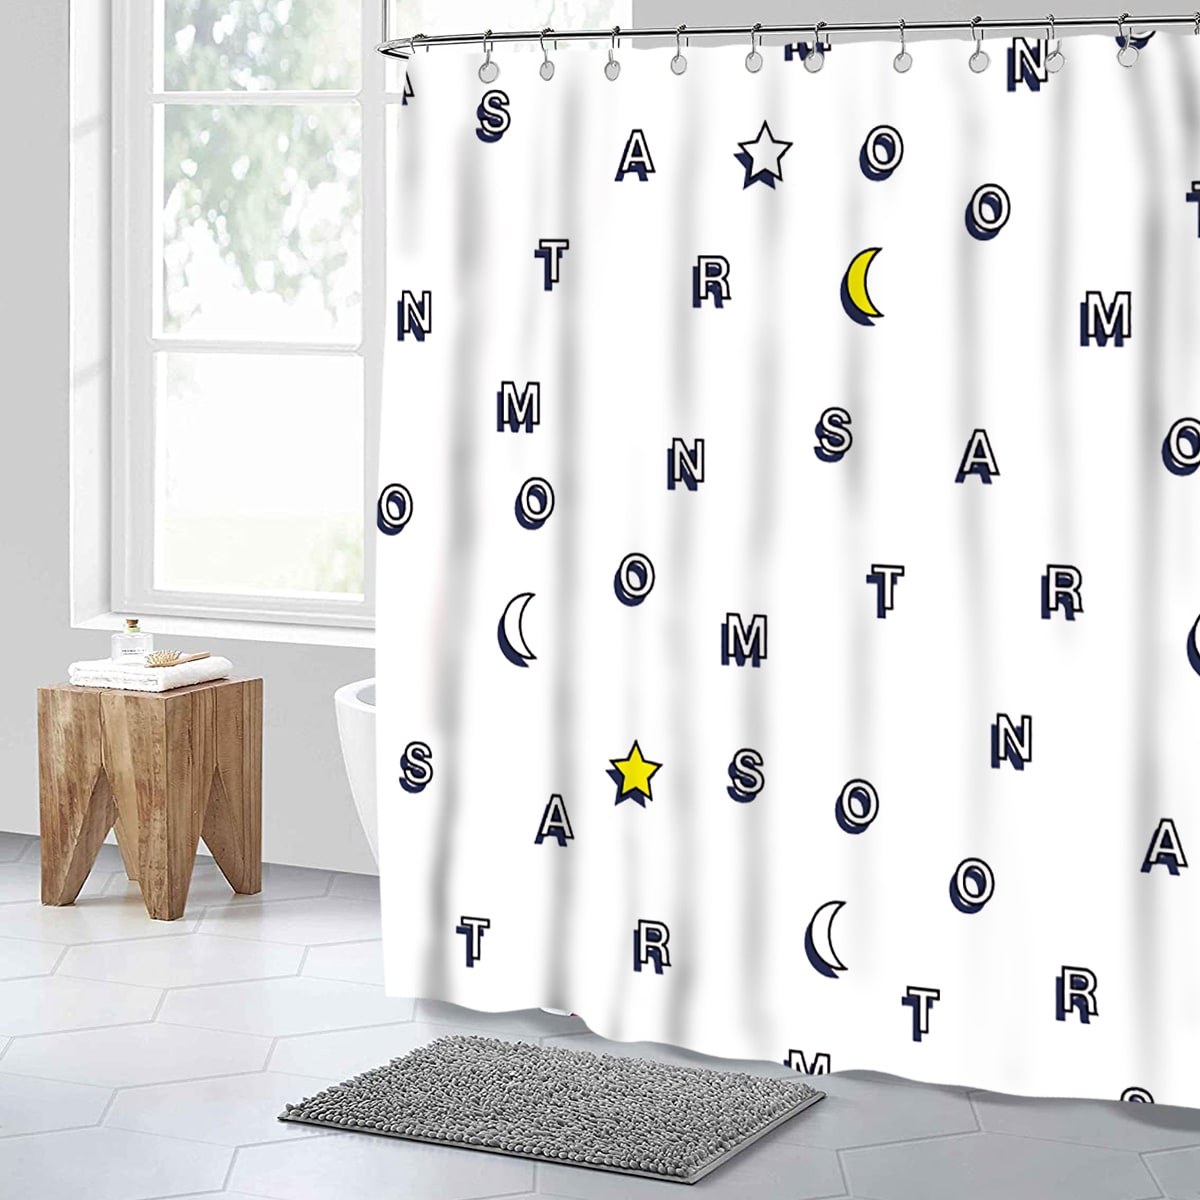 Letter Graphic Water Proof Shower Curtain